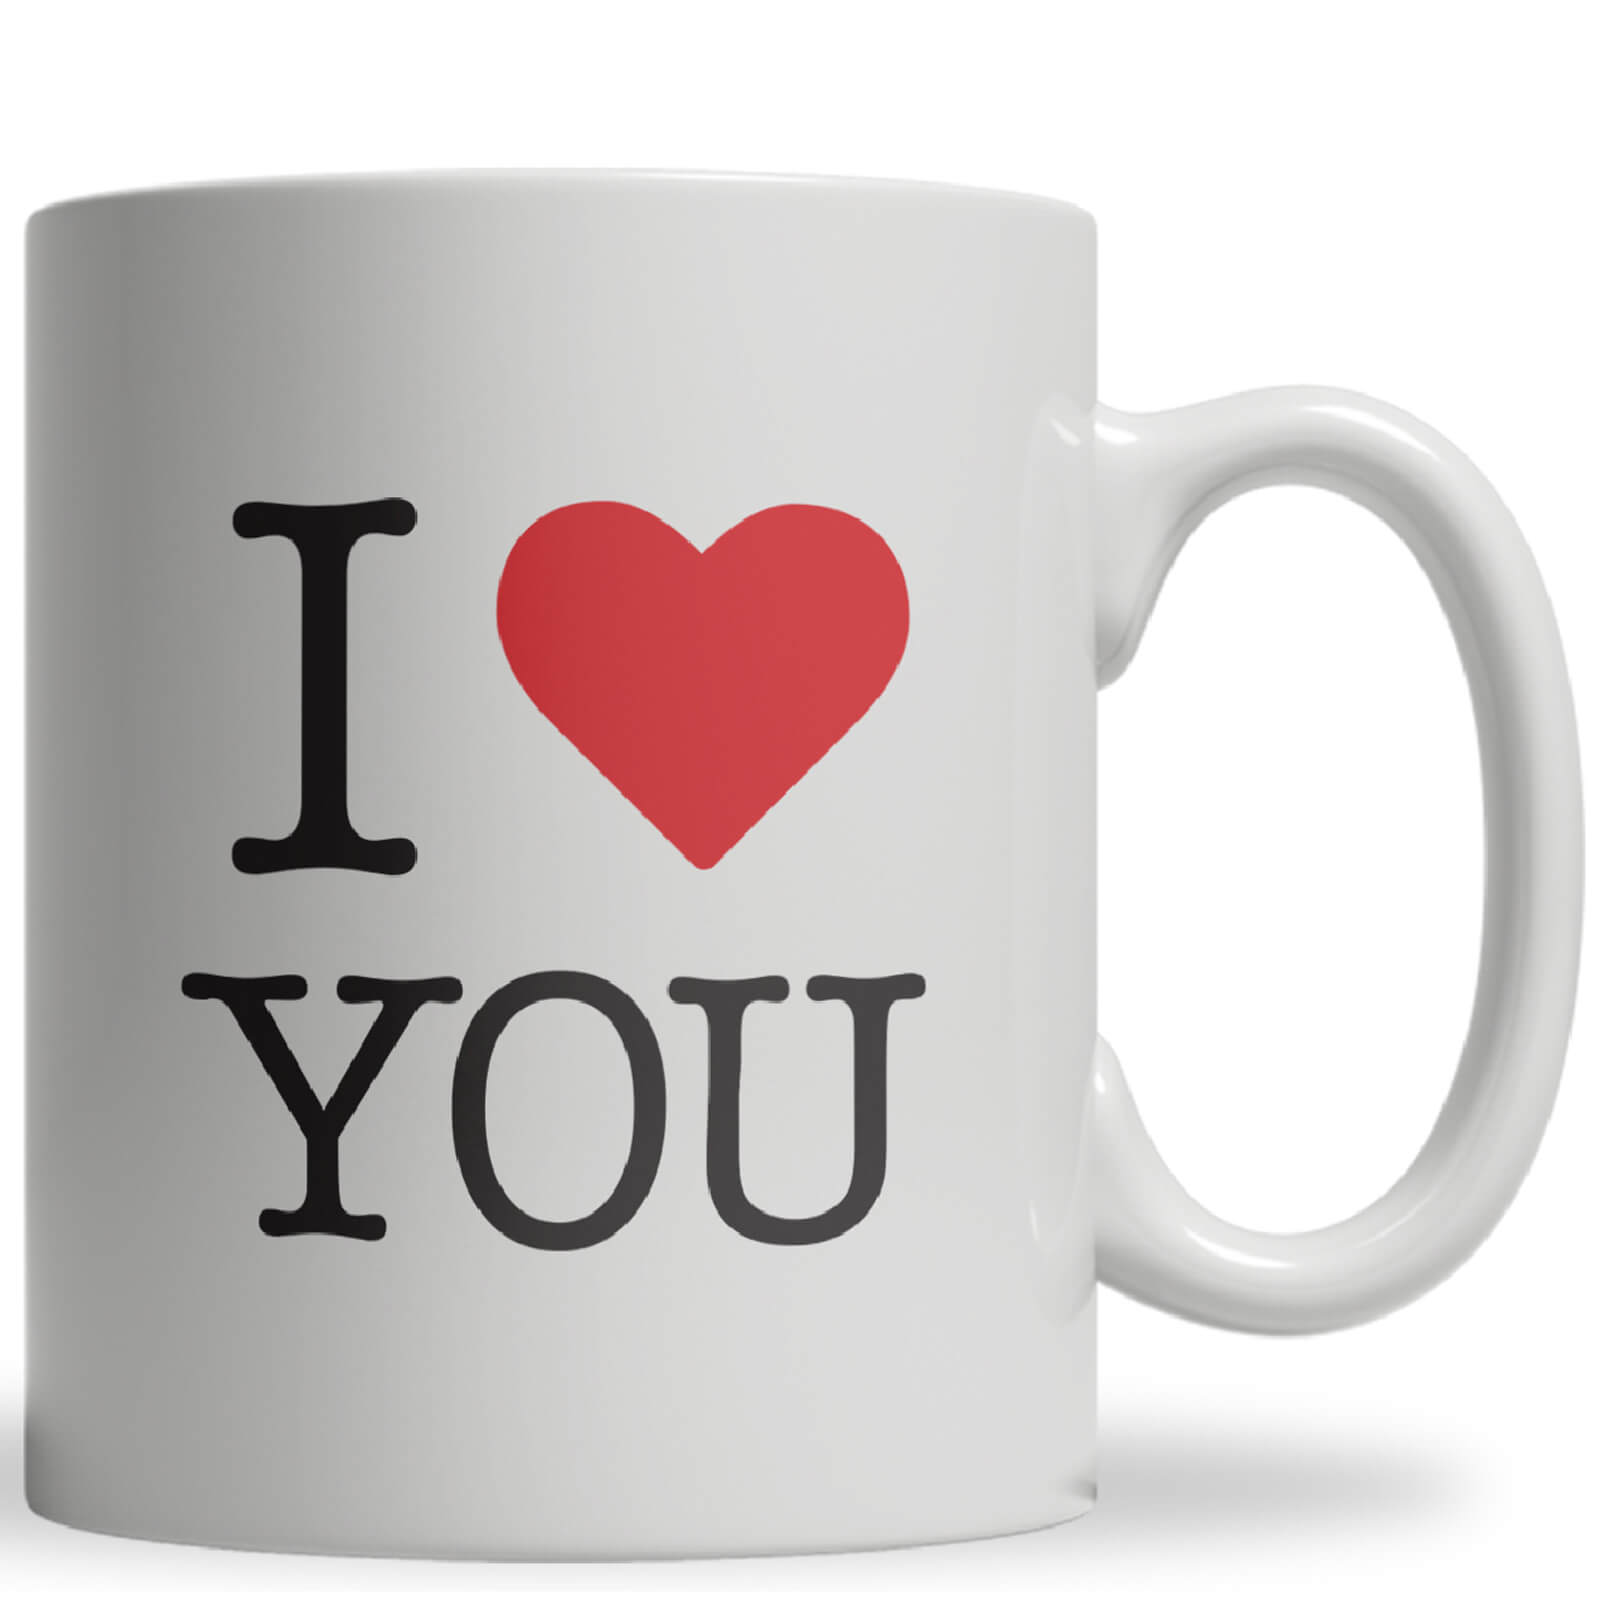 I Heart You Ceramic Mug